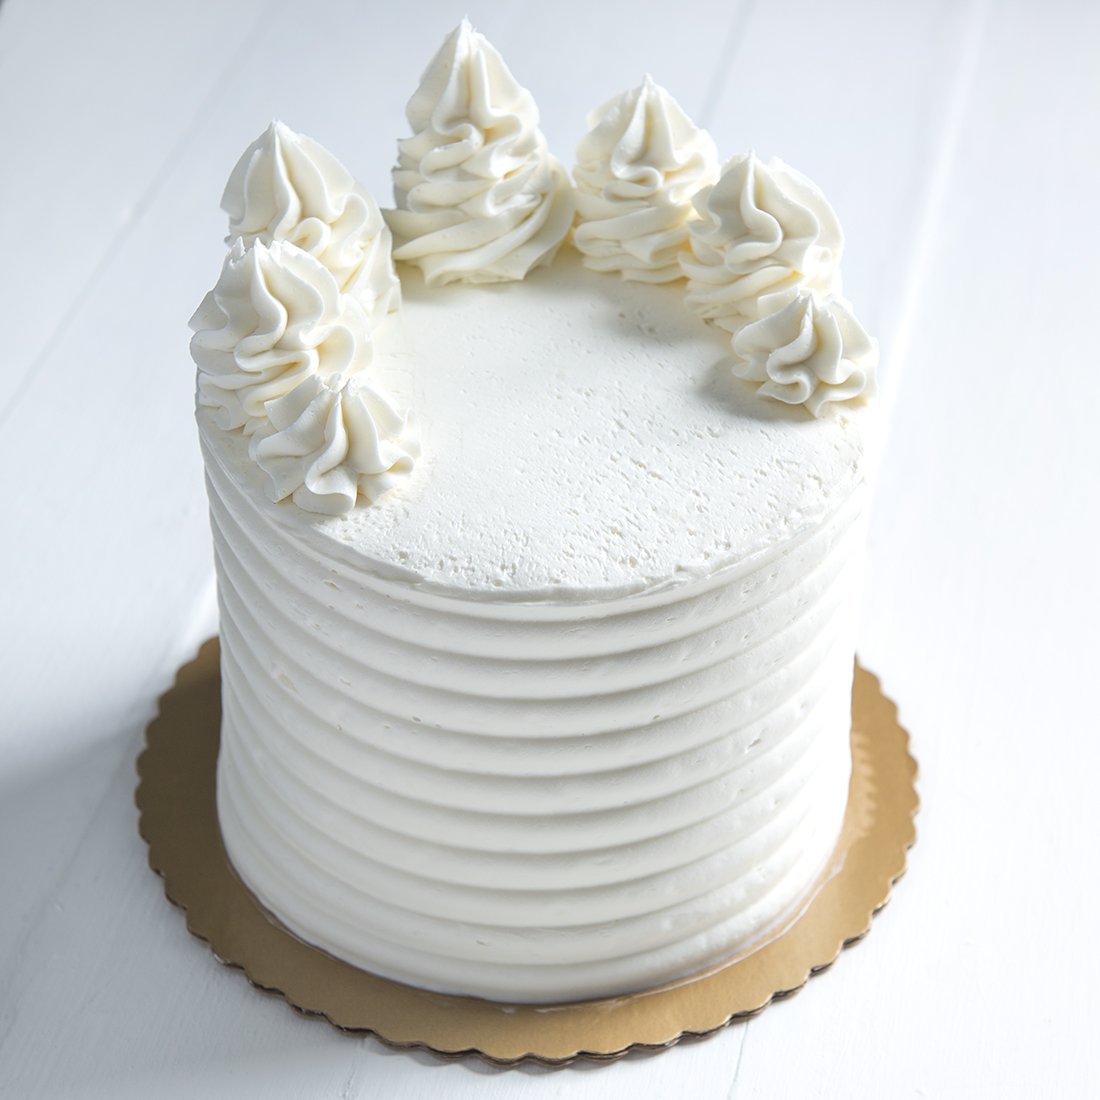 Black & White - Chocolate cake filled and frosted with vanilla buttercream6